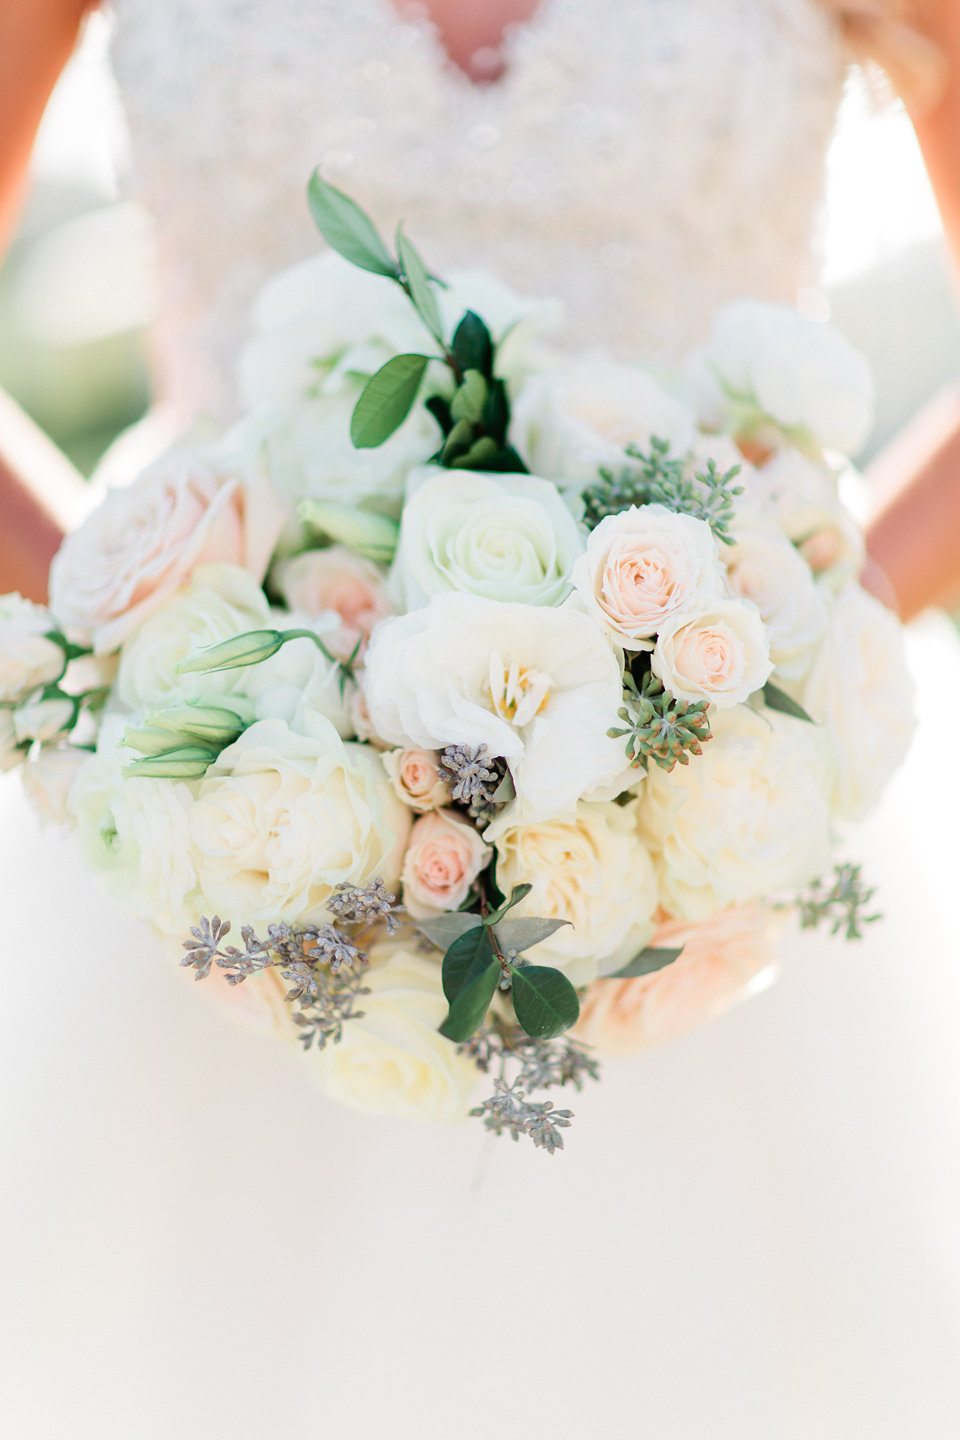 Blush and ivory Bridal bouquet of garden roses, eucalyptus, peonies   Blush Wedding at TPC Sawgrass Wedding Ponte Vedra Beach  Jacksonville Wedding Planner Blue Ribbon Weddings  Jacksonville Wedding Photographer Debra Eby Photography  Wedding Ceremony & Reception at TPC Sawgrass Jacksonville